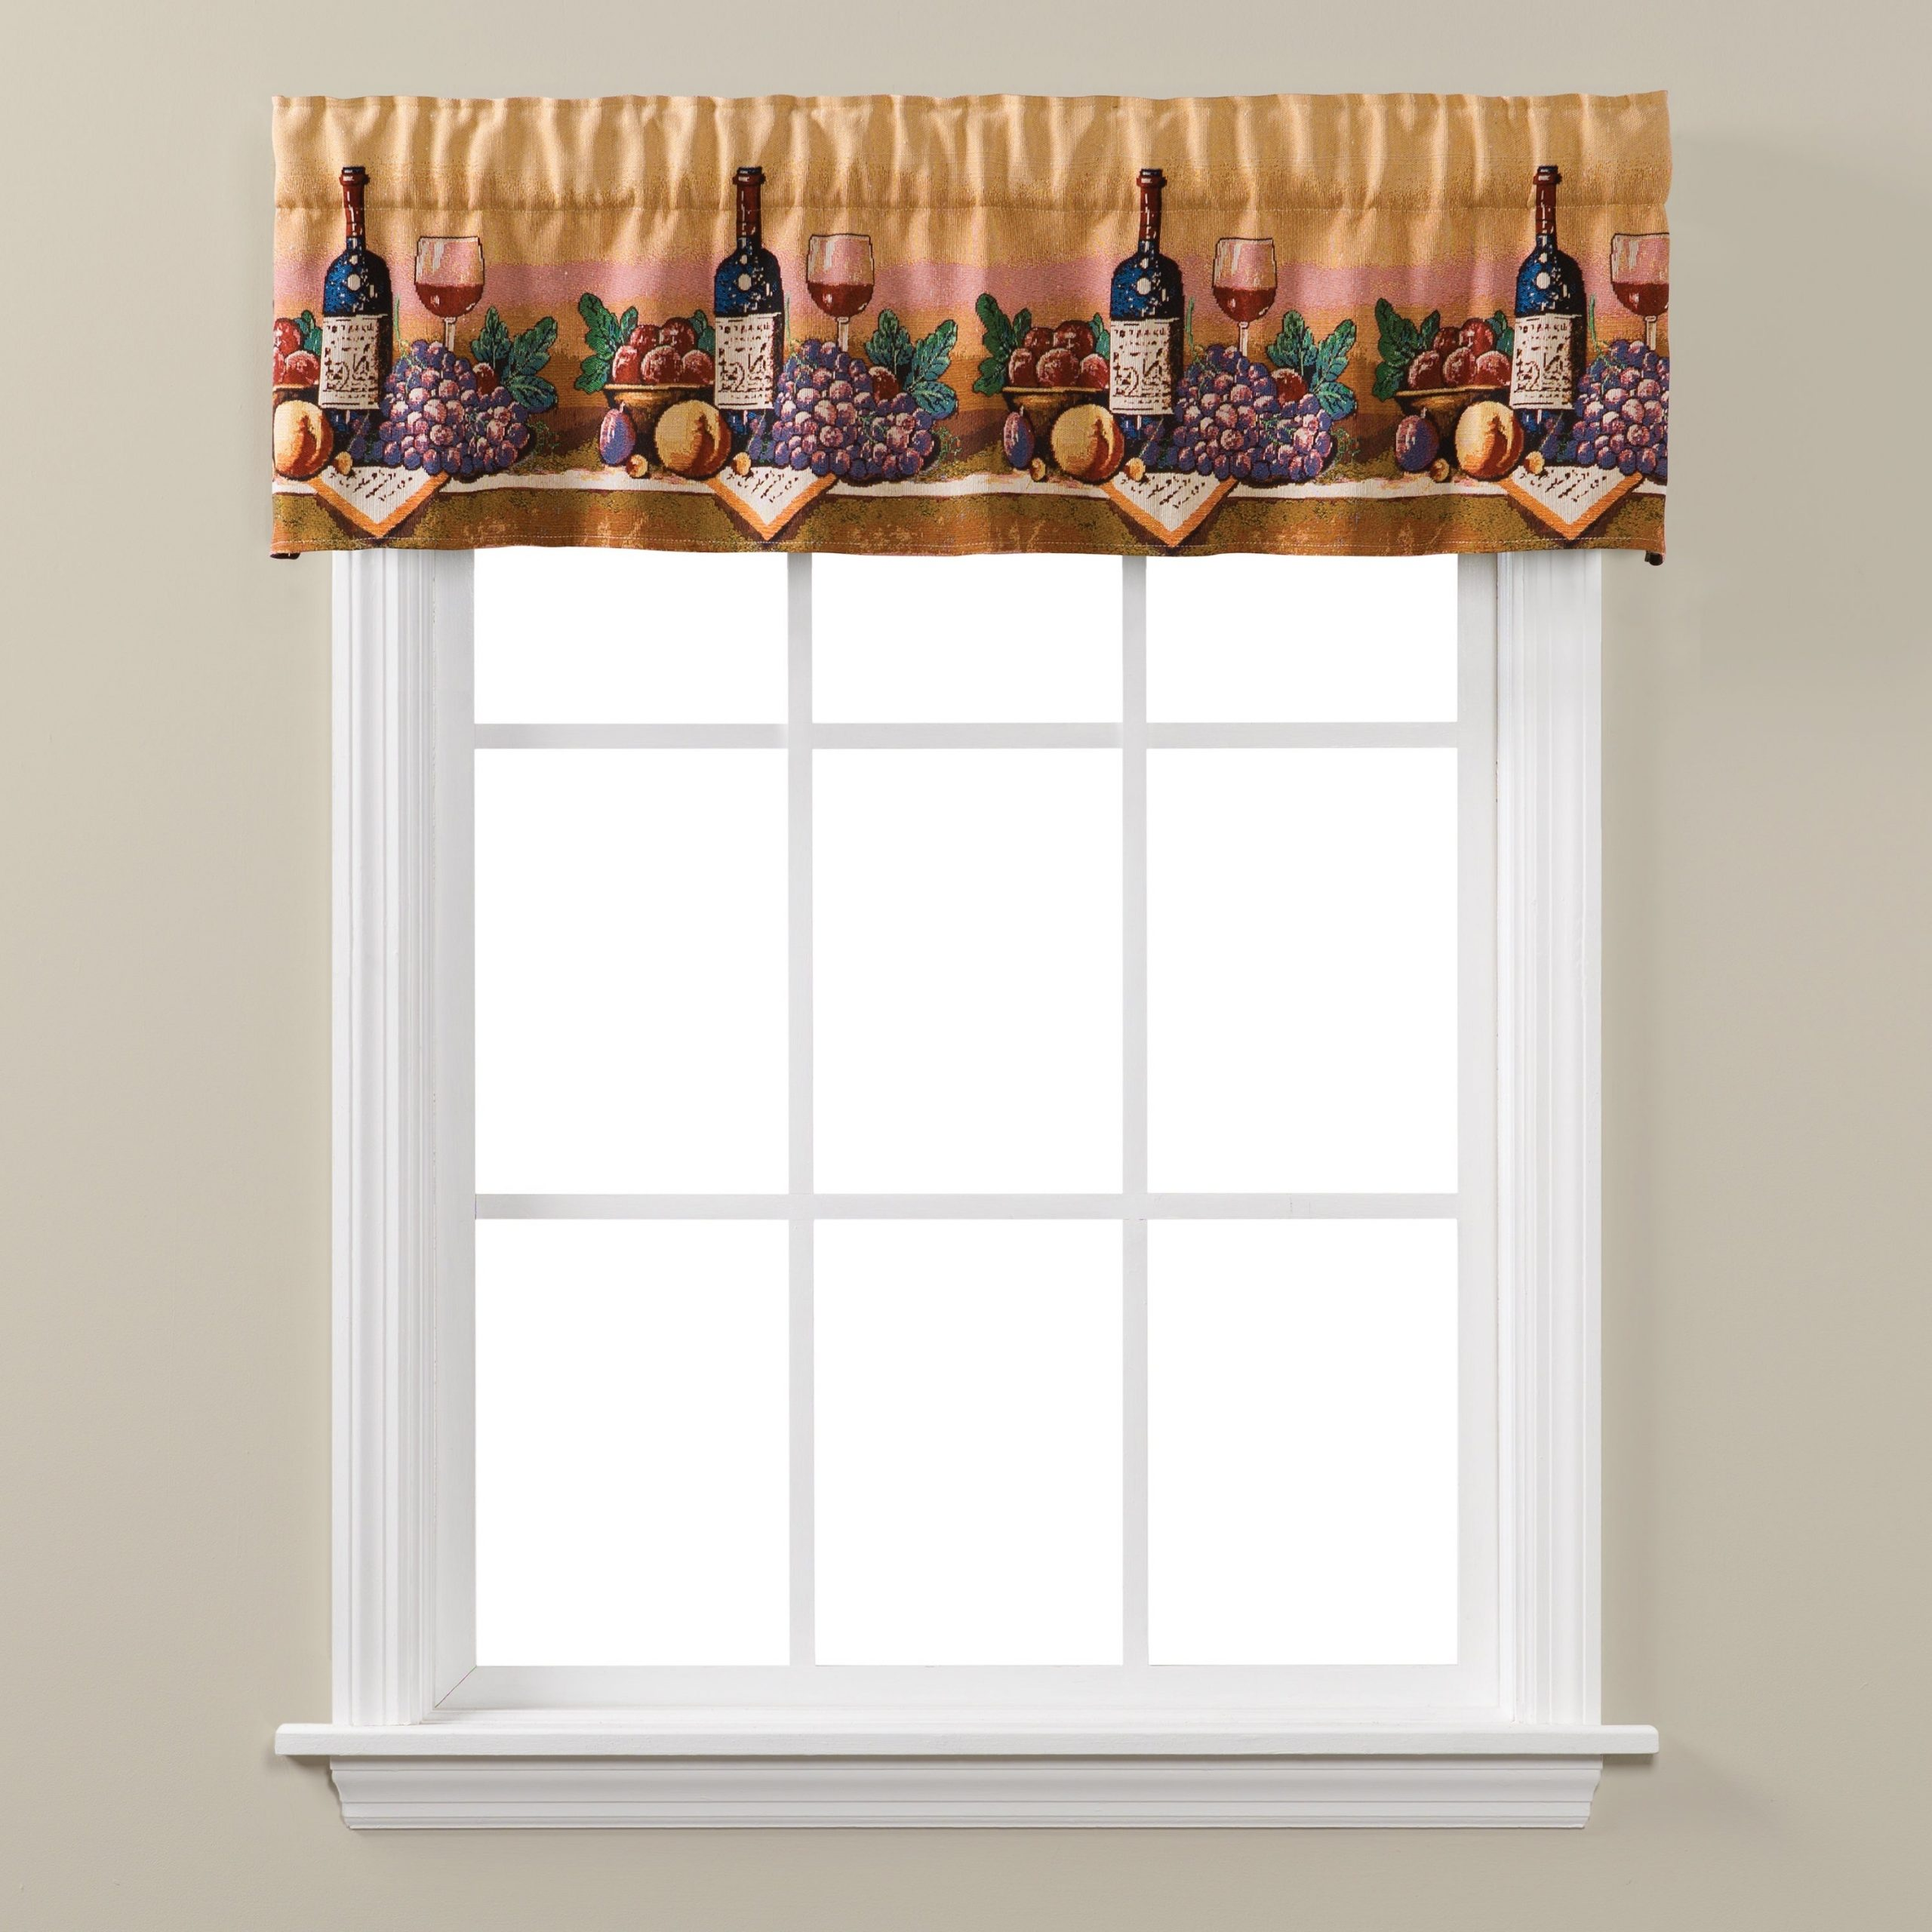 Skl Home Uncork And Unwind Tapestry Valance For Chateau Wines Cottage Kitchen Curtain Tier And Valance Sets (View 17 of 20)